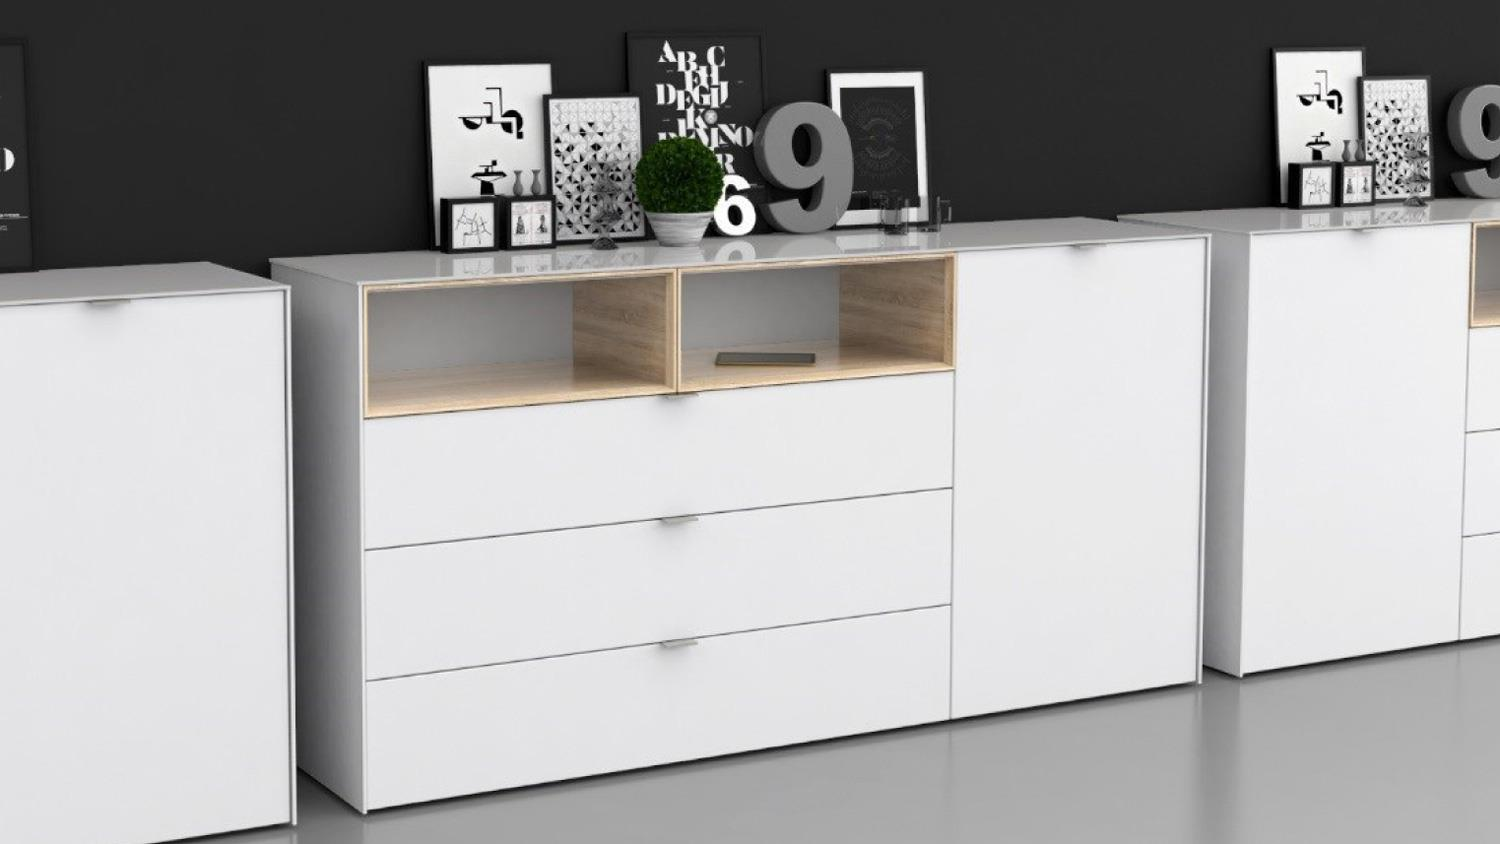 kommode 2 stamford in wei sonoma eiche mit d mpfung und selbsteinzug. Black Bedroom Furniture Sets. Home Design Ideas